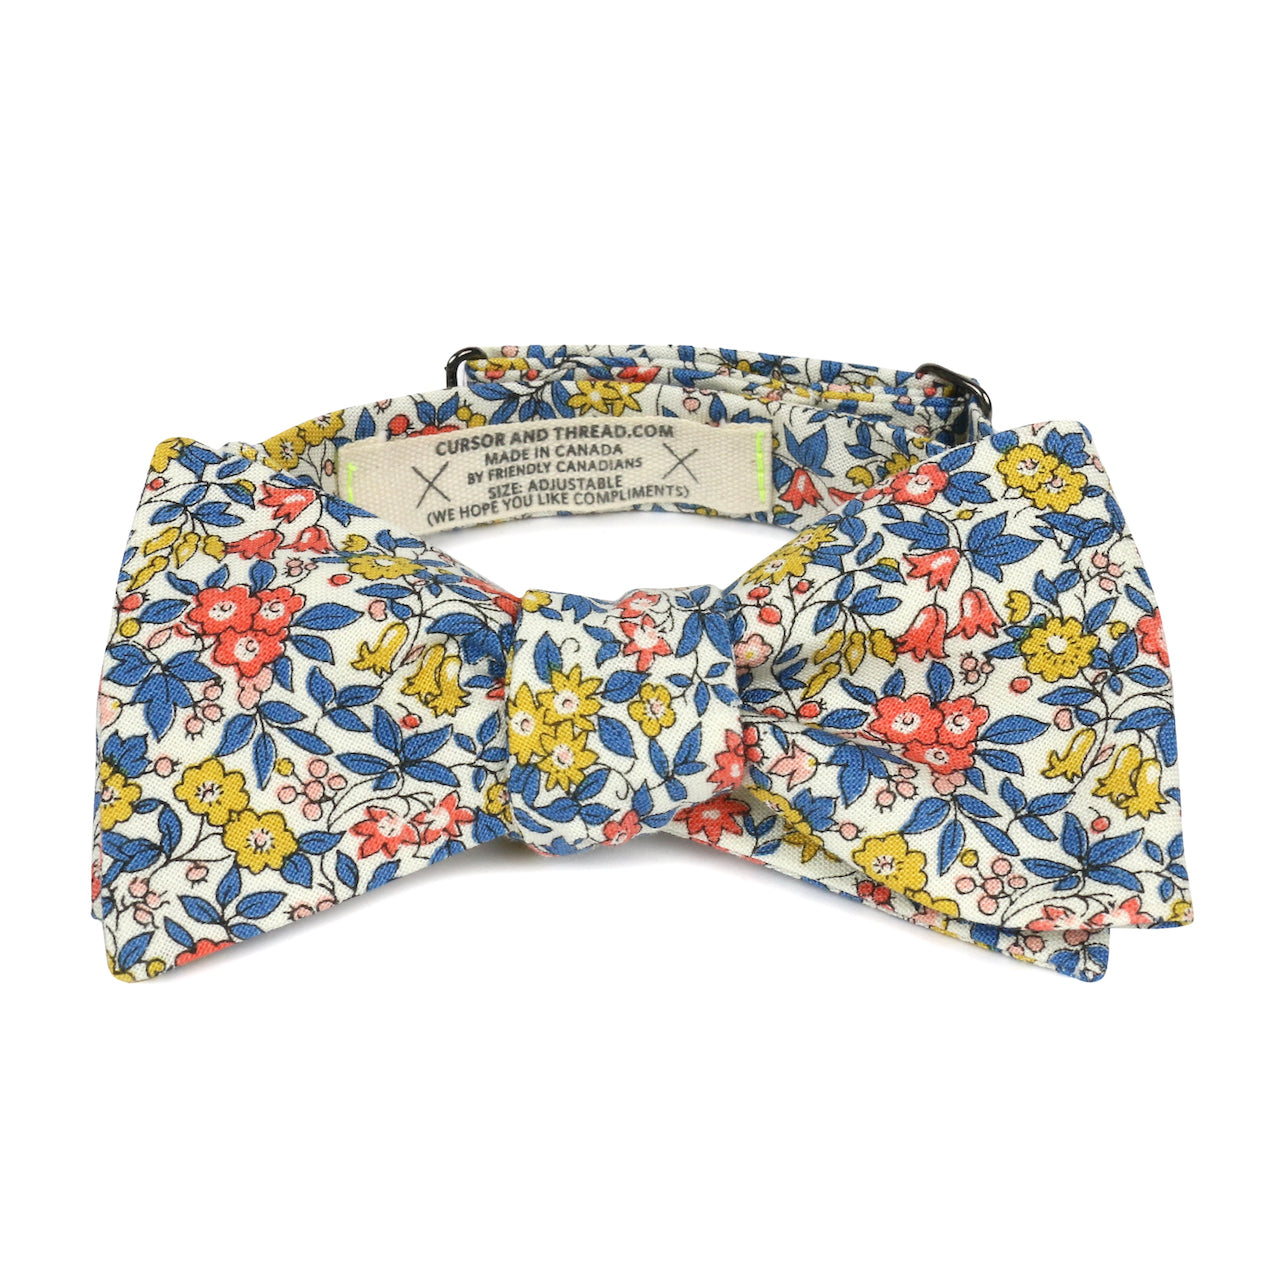 Chatham Floral Bow Tie in Liberty Cotton Made in Canada